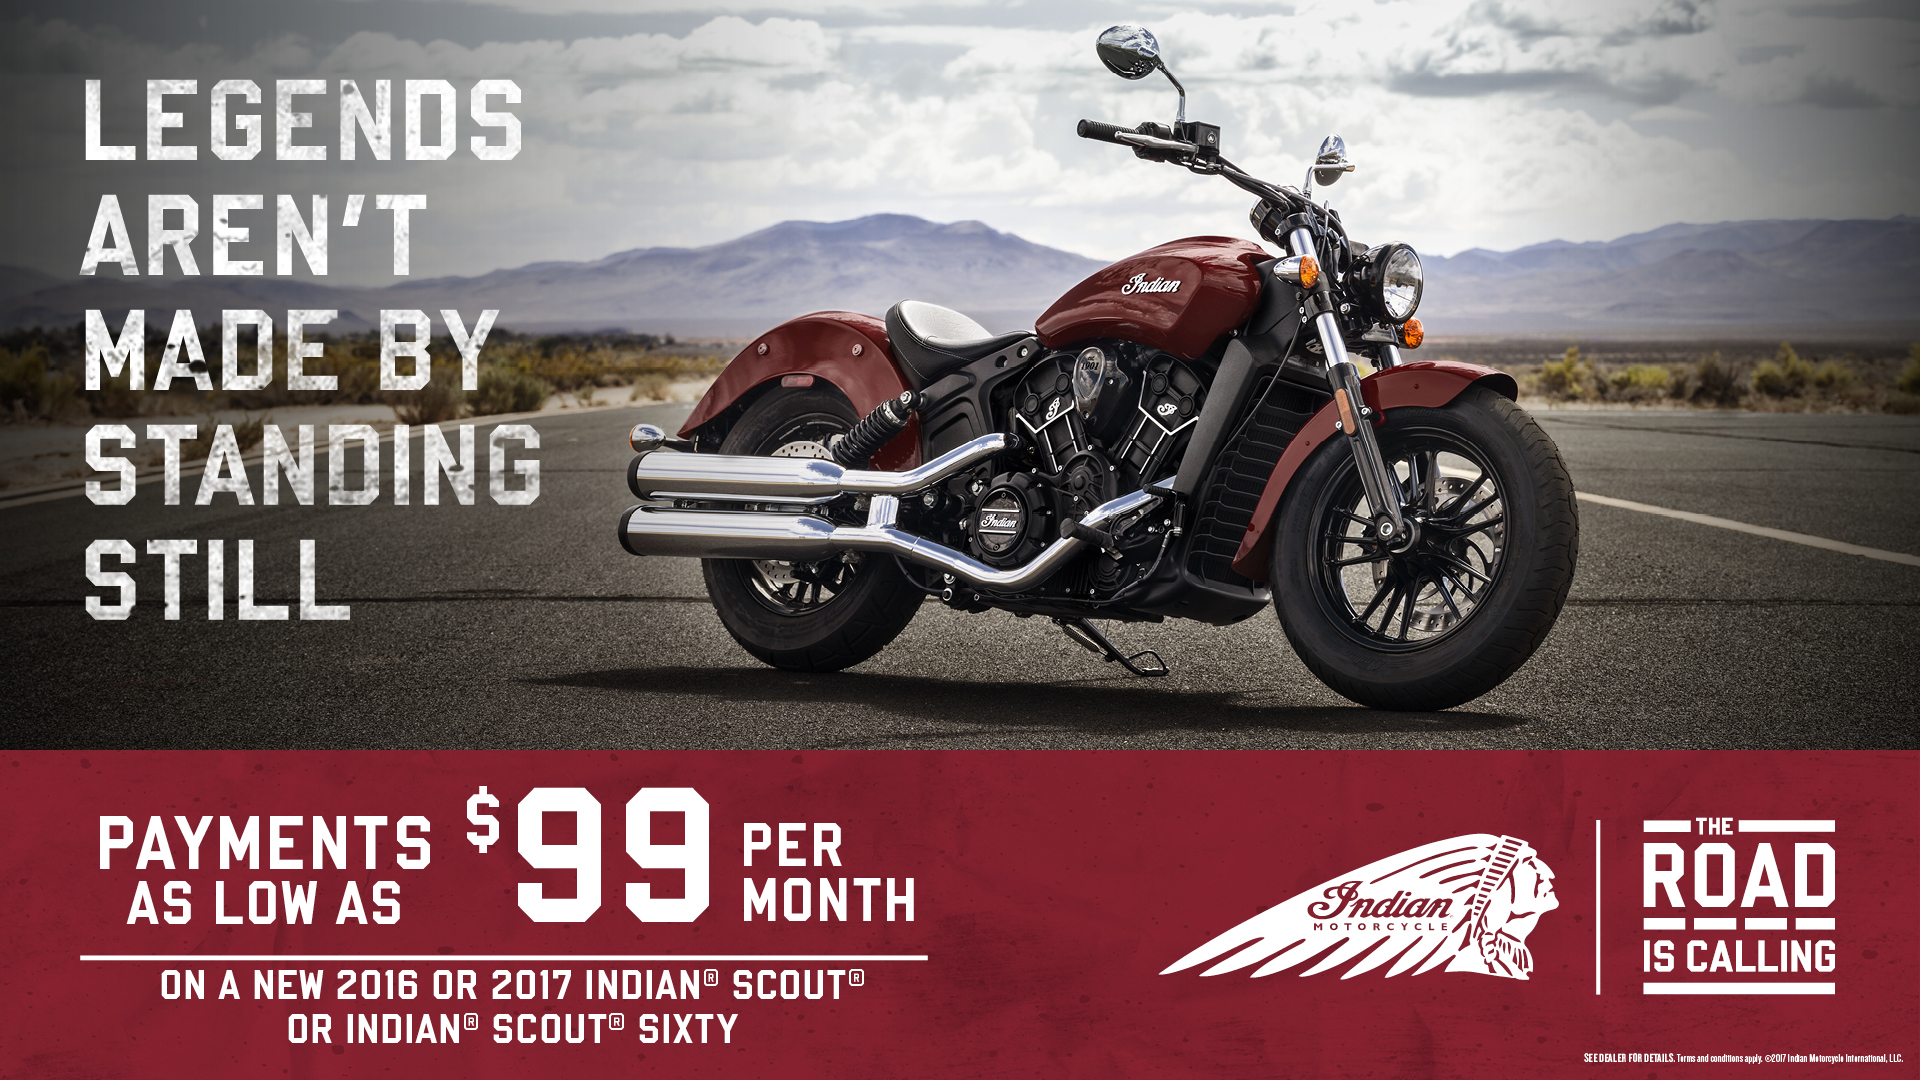 Payments as low as $99 per month on a new 2016 or 2017 Indian Scout or Indian Scout Sixty.